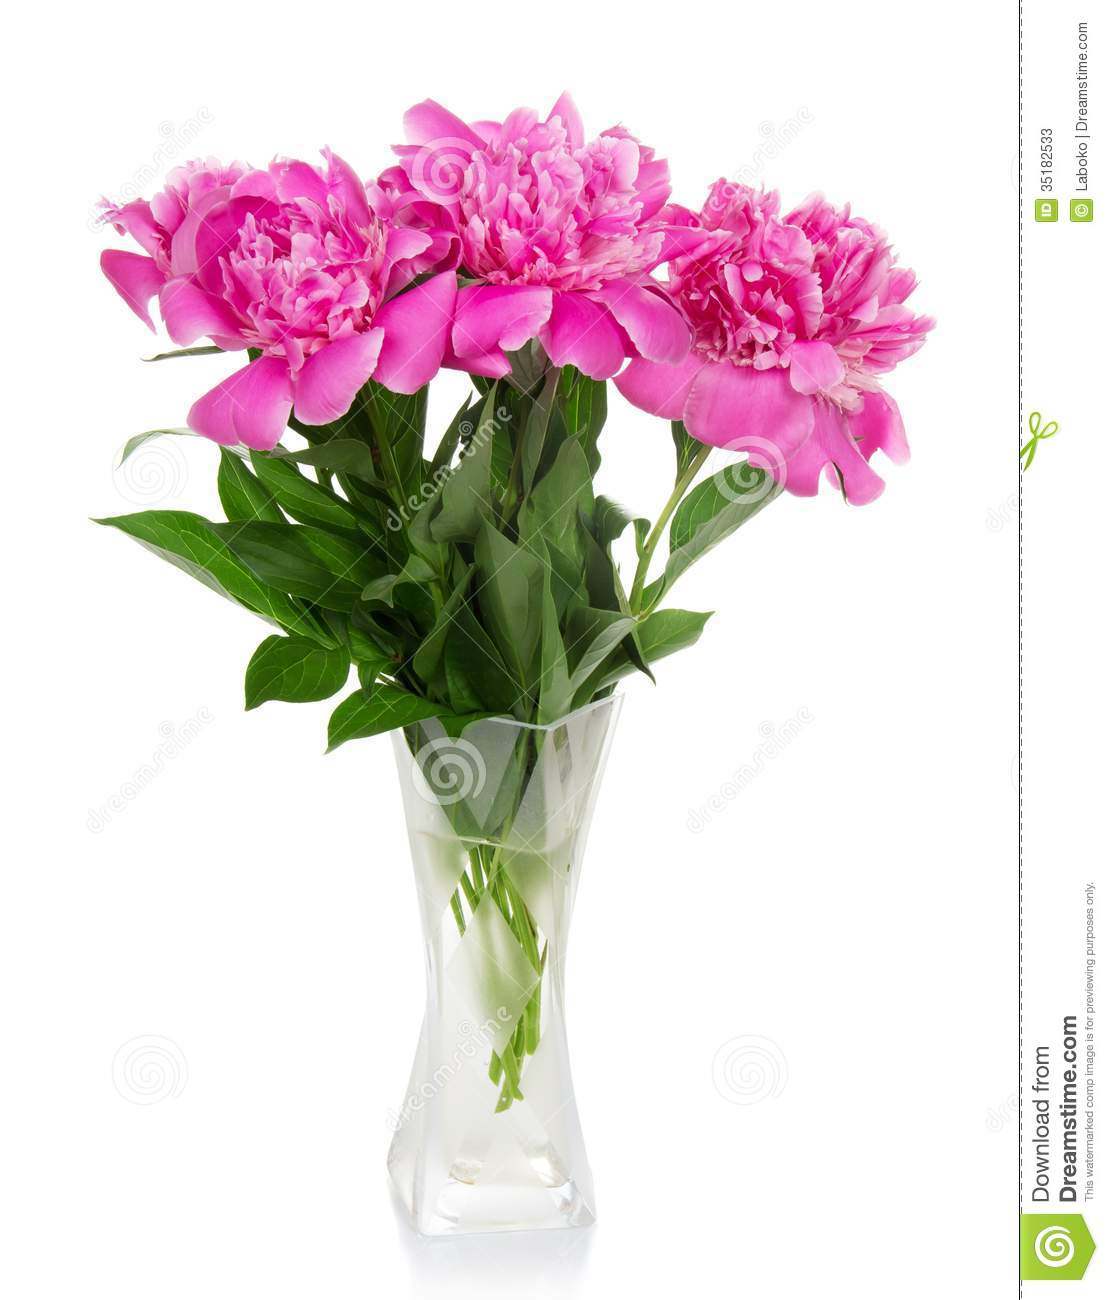 Three Big Pink Peonies In The Glass Vase Stock Image